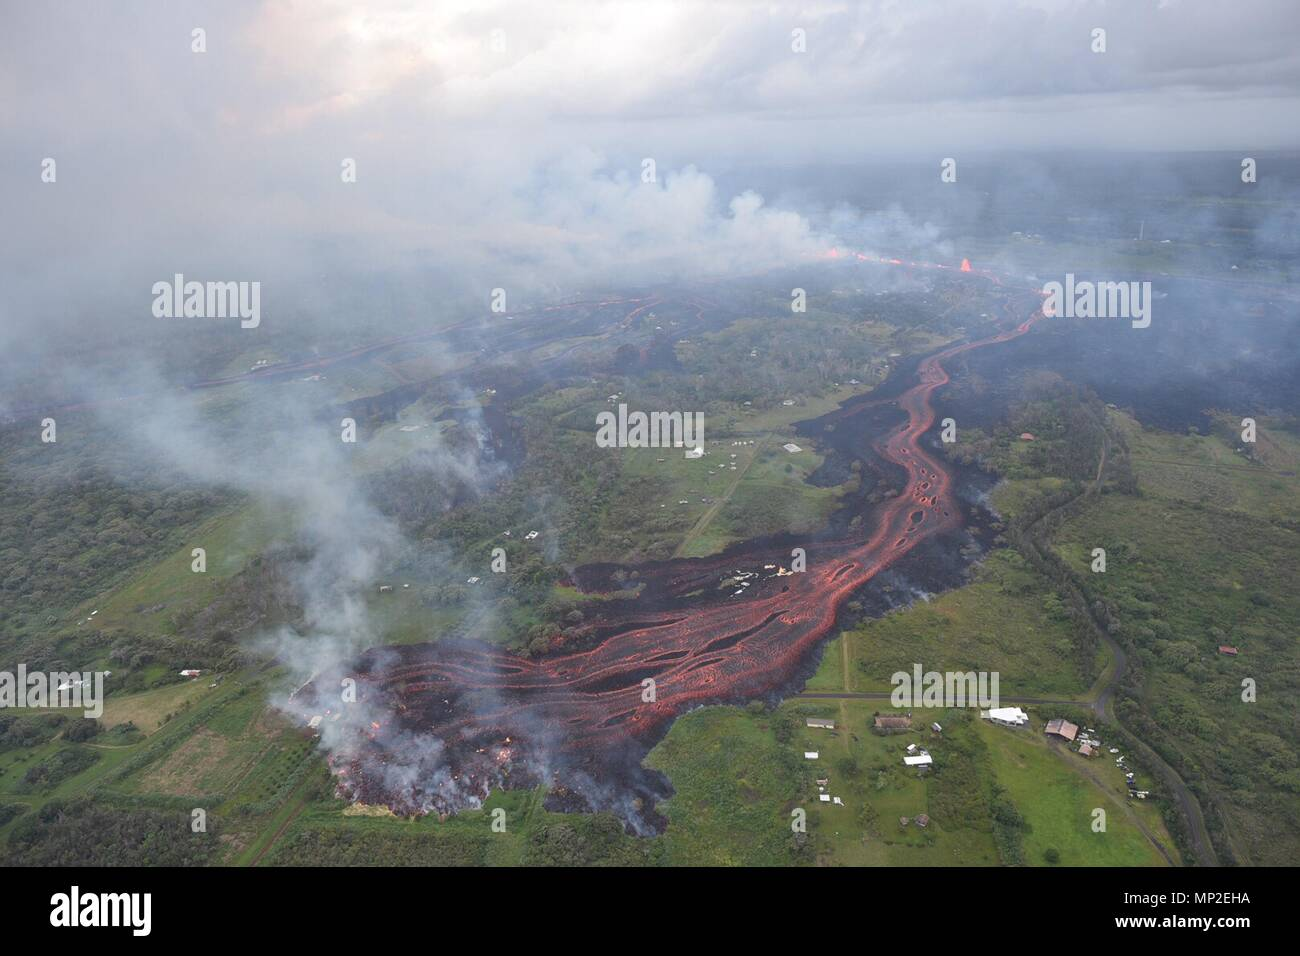 Channelized lava emerges from the elongated fissure 16-20 from the eruption of the Kilauea volcano May 19, 2018 in Pahoa, Hawaii. Stock Photo